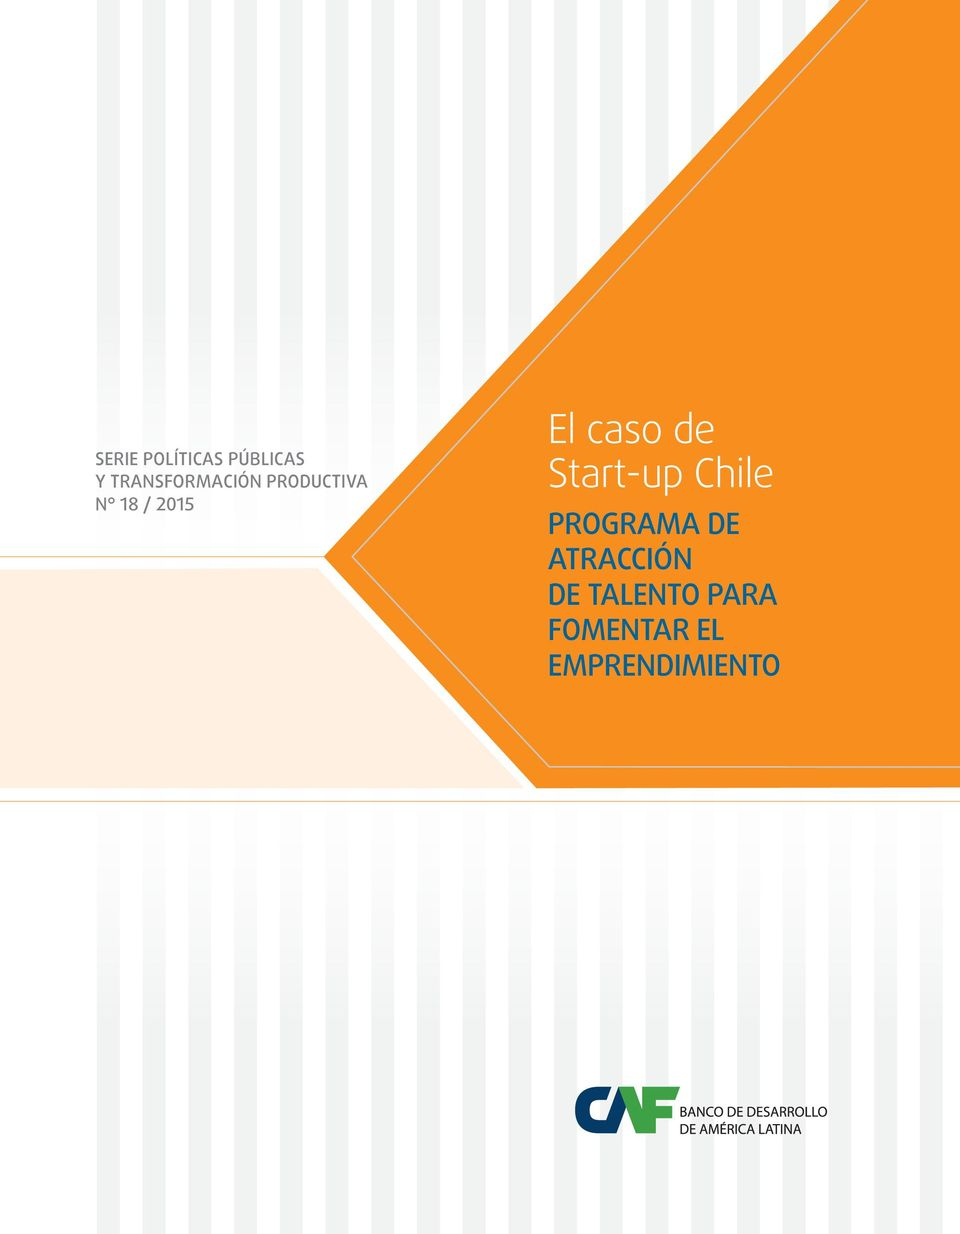 El caso de Start-up Chile Programa de